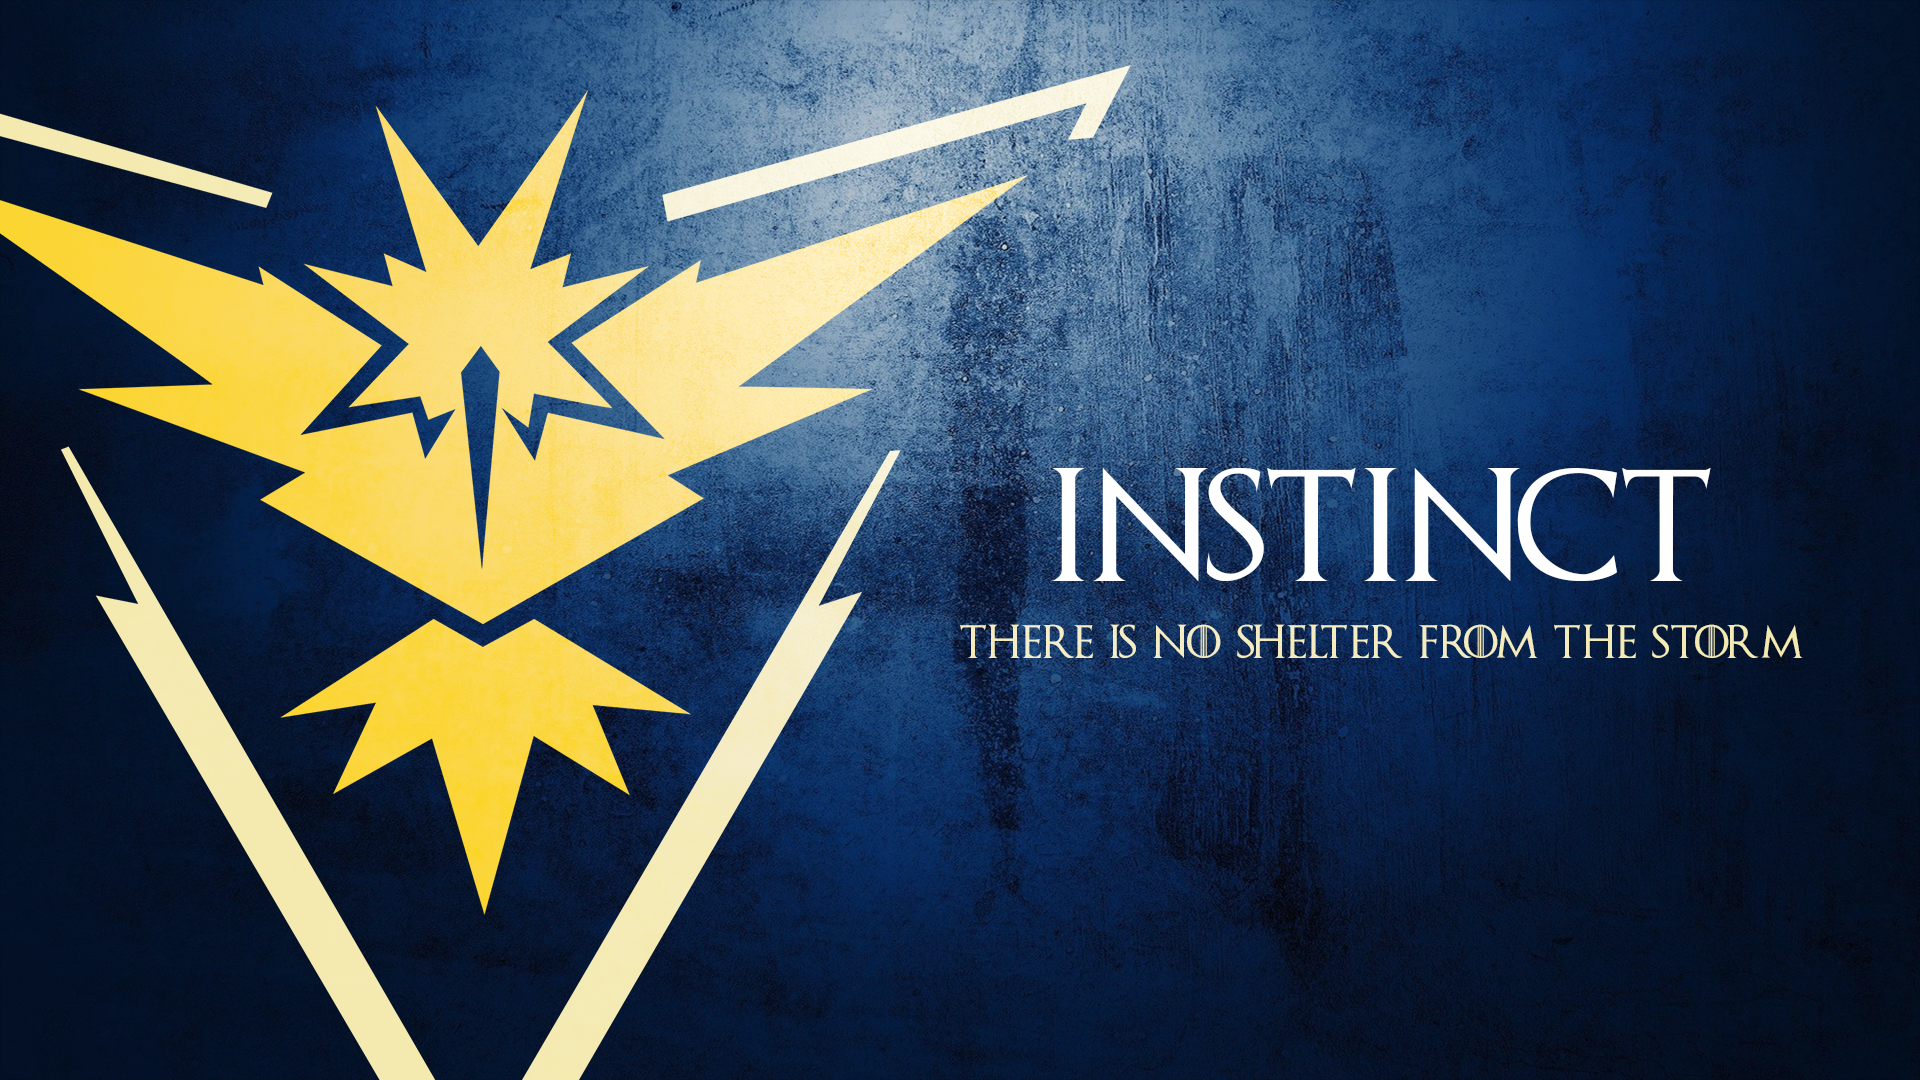 24 Team Instinct Hd Wallpapers Background Images Wallpaper Abyss